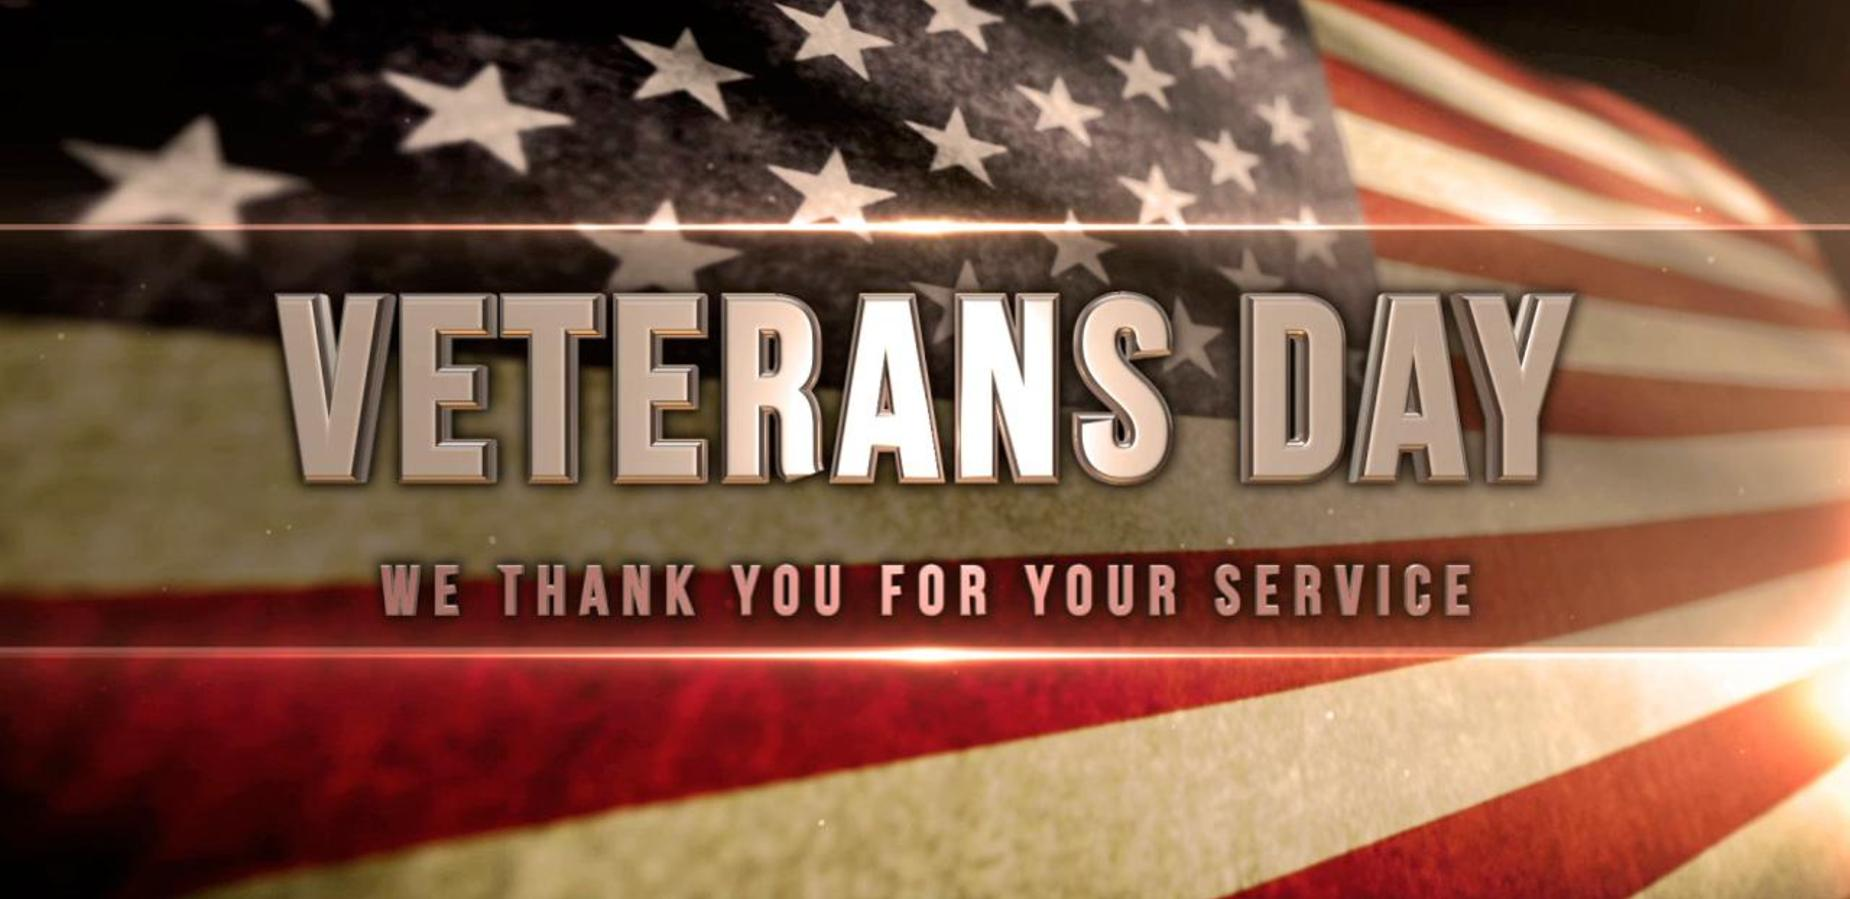 Veterans Day. We thank you for your service.